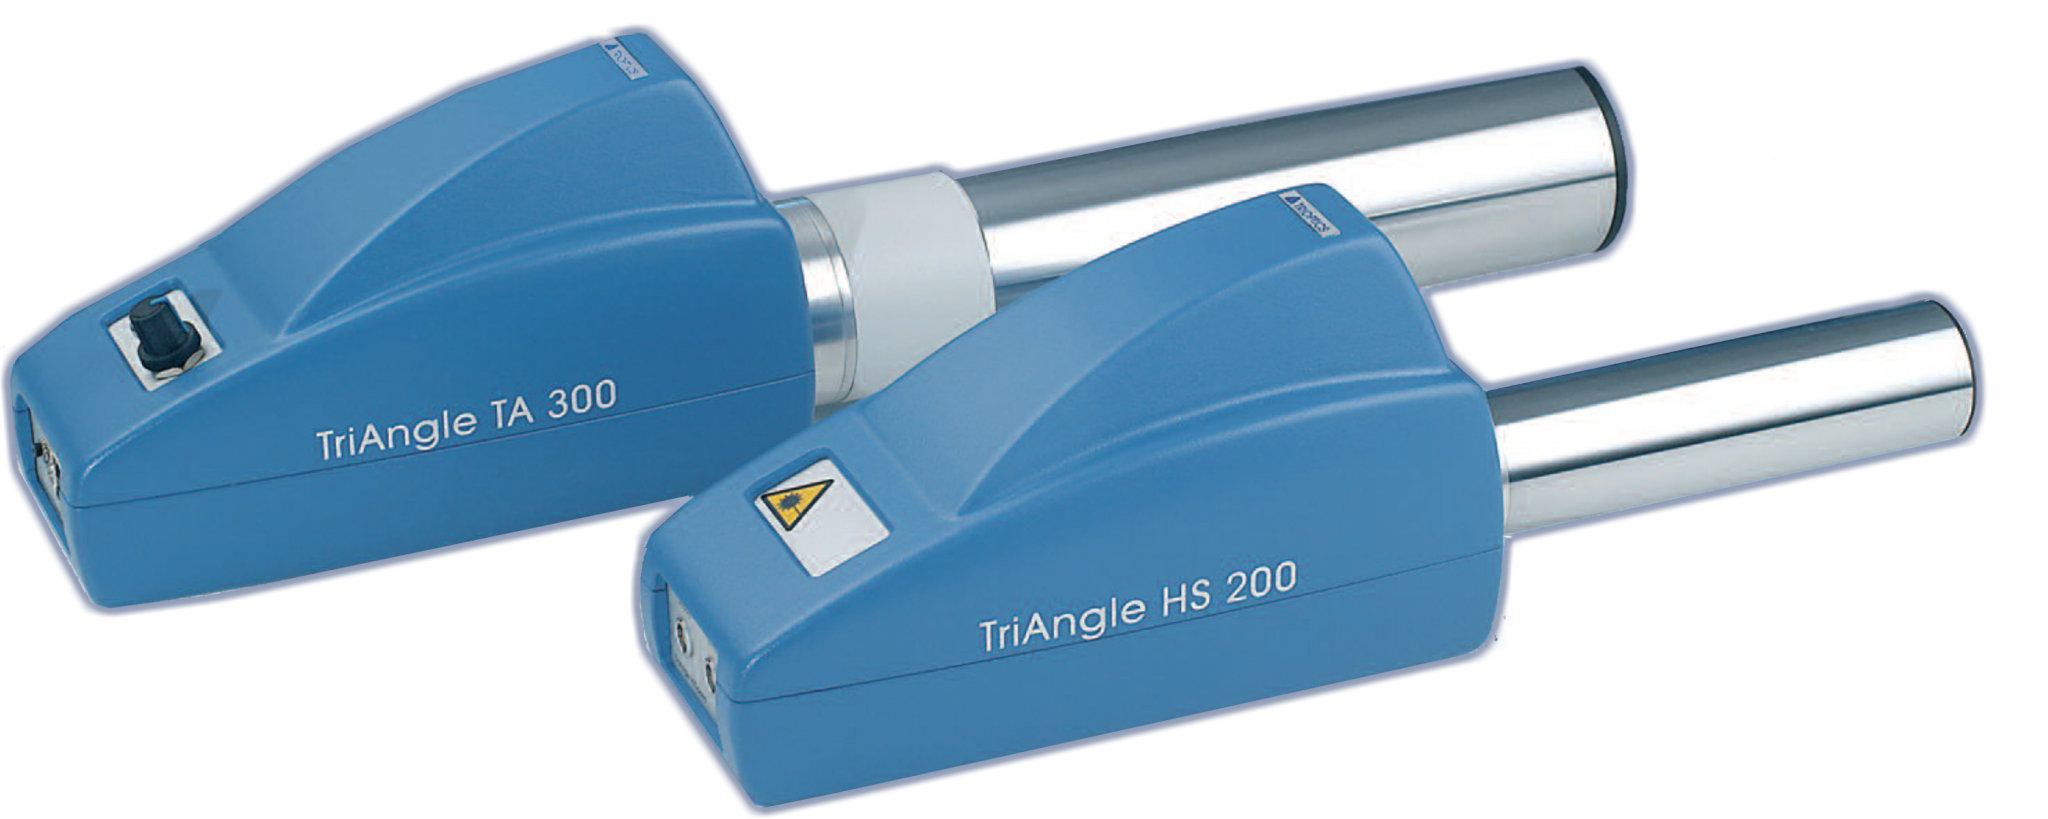 Trioptics TriAngle TA 300 HS 200